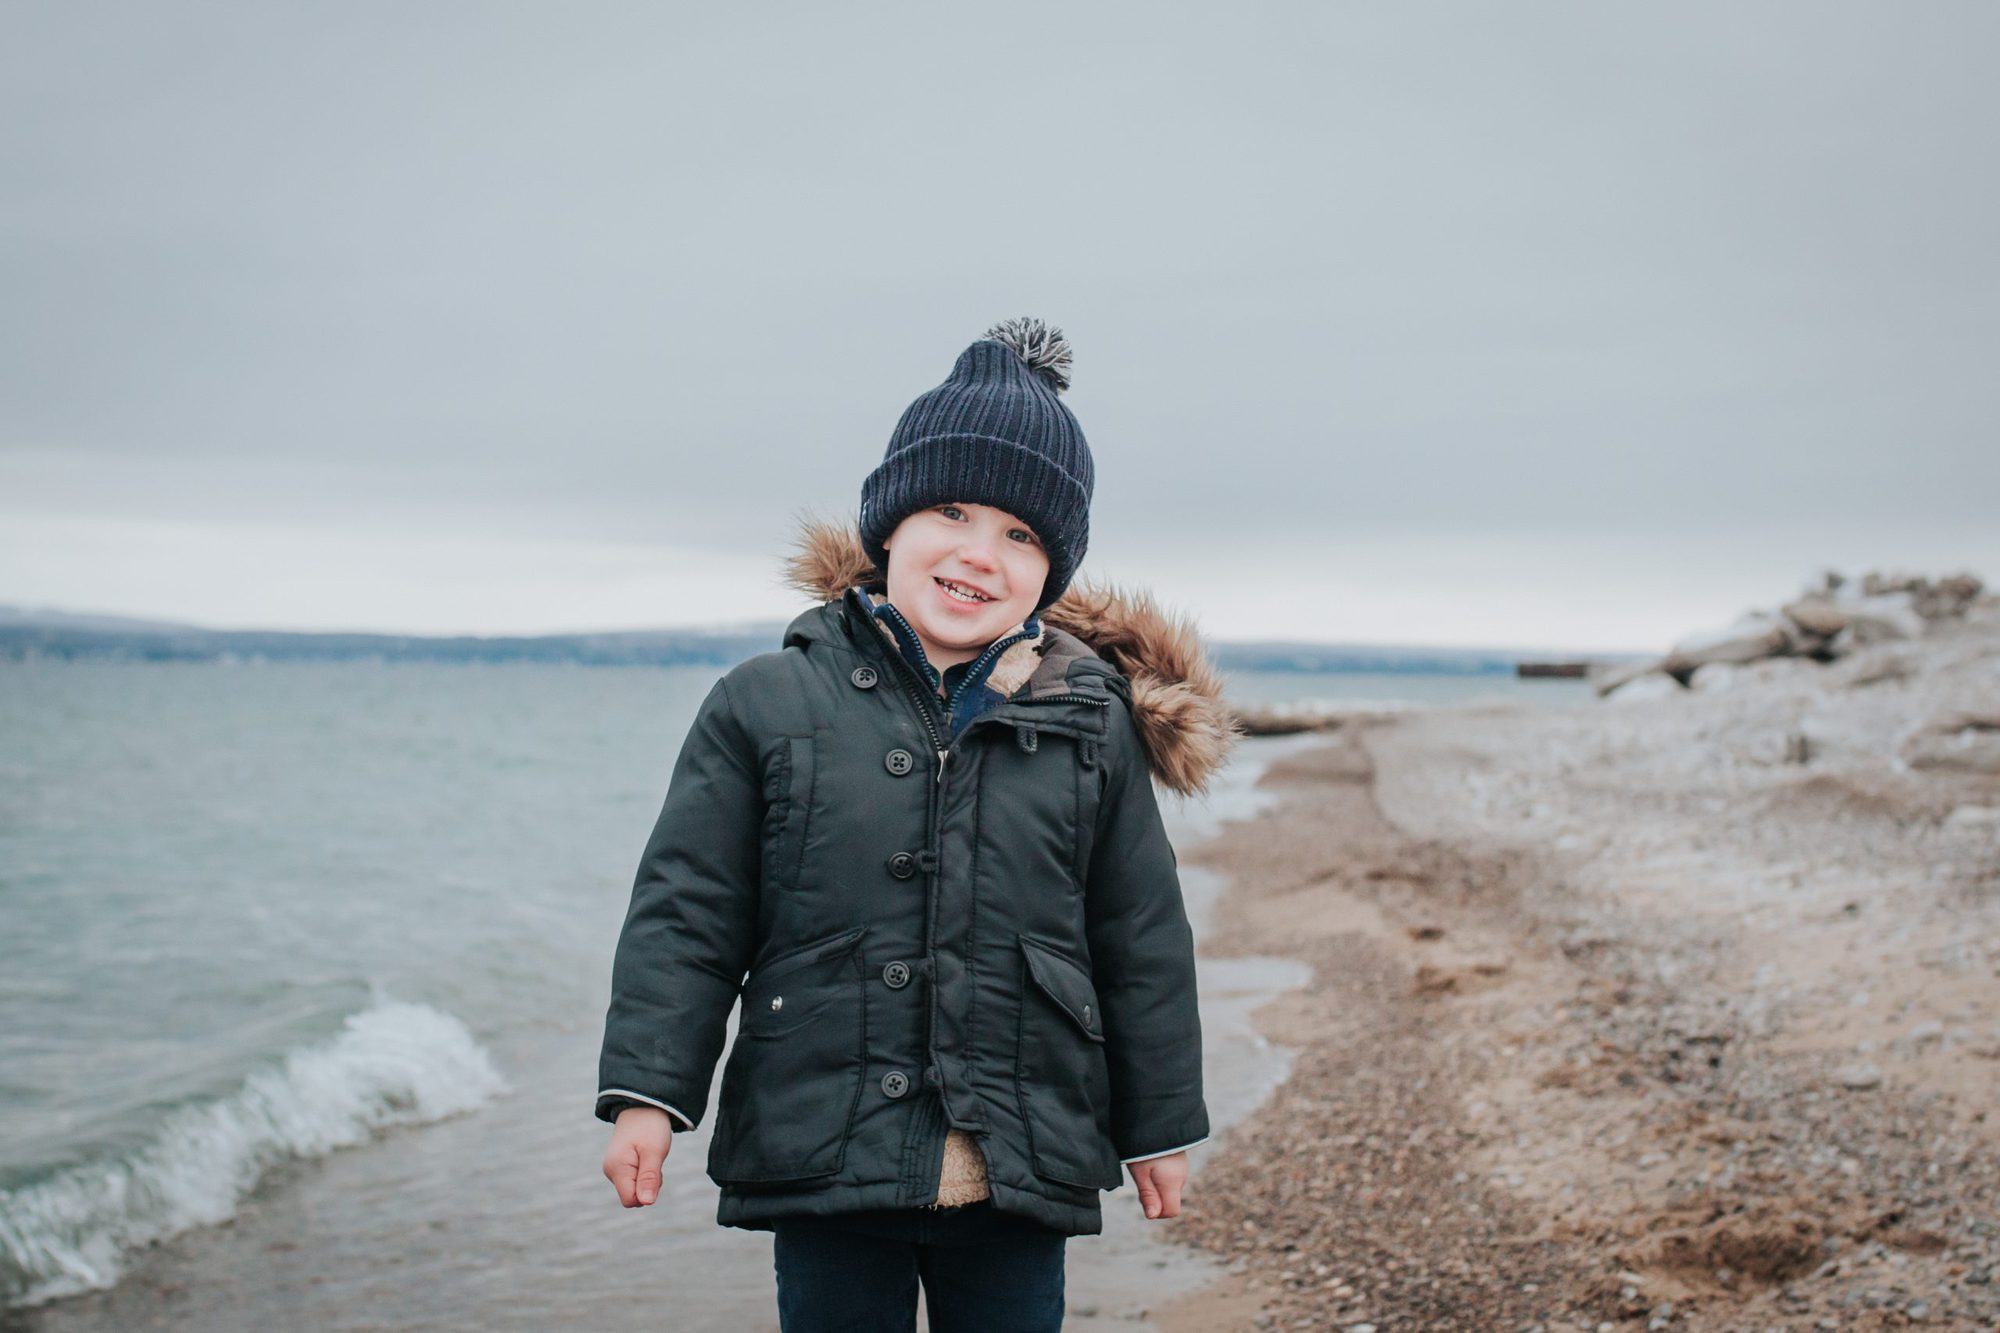 5 Benefits of Getting the Flu Vaccine in Michigan featured by top MI lifestyle blogger, House of Navy: toddler boy smiling near lakeshore in winter |Flu Vaccine Benefits by popular Michigan lifestyle blog, The House of Navy: image of a little boys wearing a fur trimmed hooded coat and blue pom beaning while standing next to the edge of a lake.